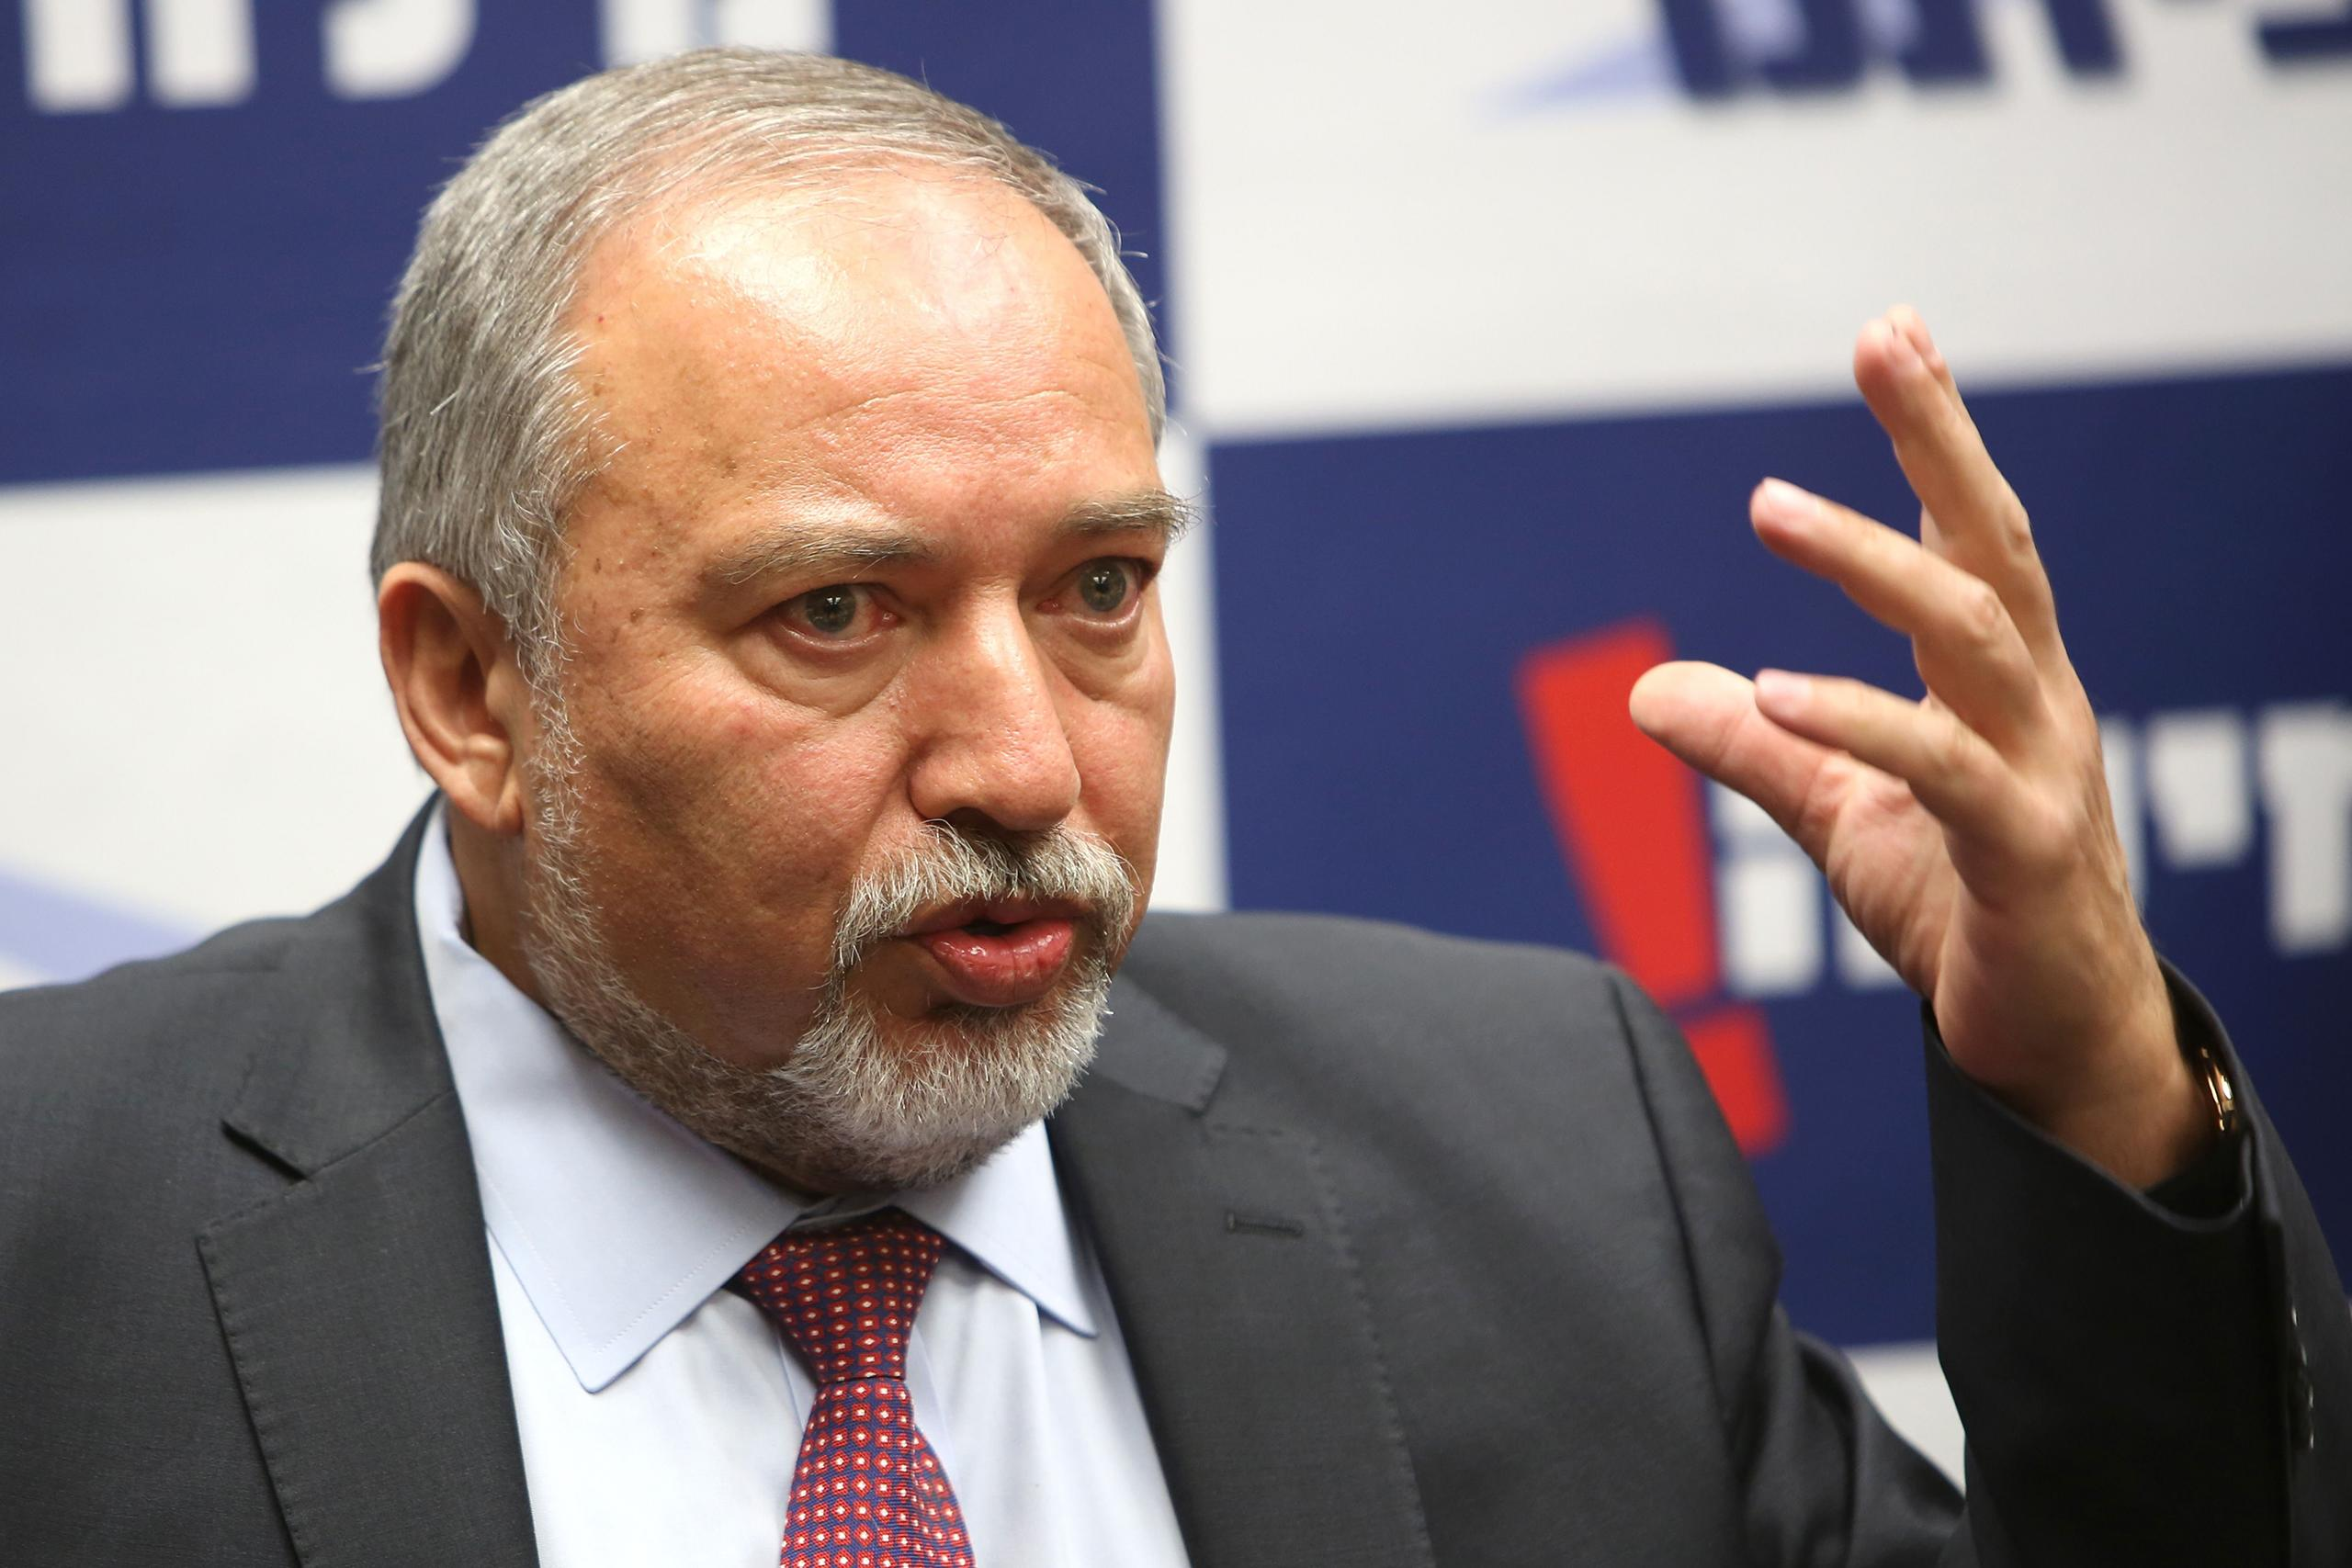 Israel's New Defense Minister Avigdor Lieberman Has Threatened to Bomb Egypt and Kill Palestinians